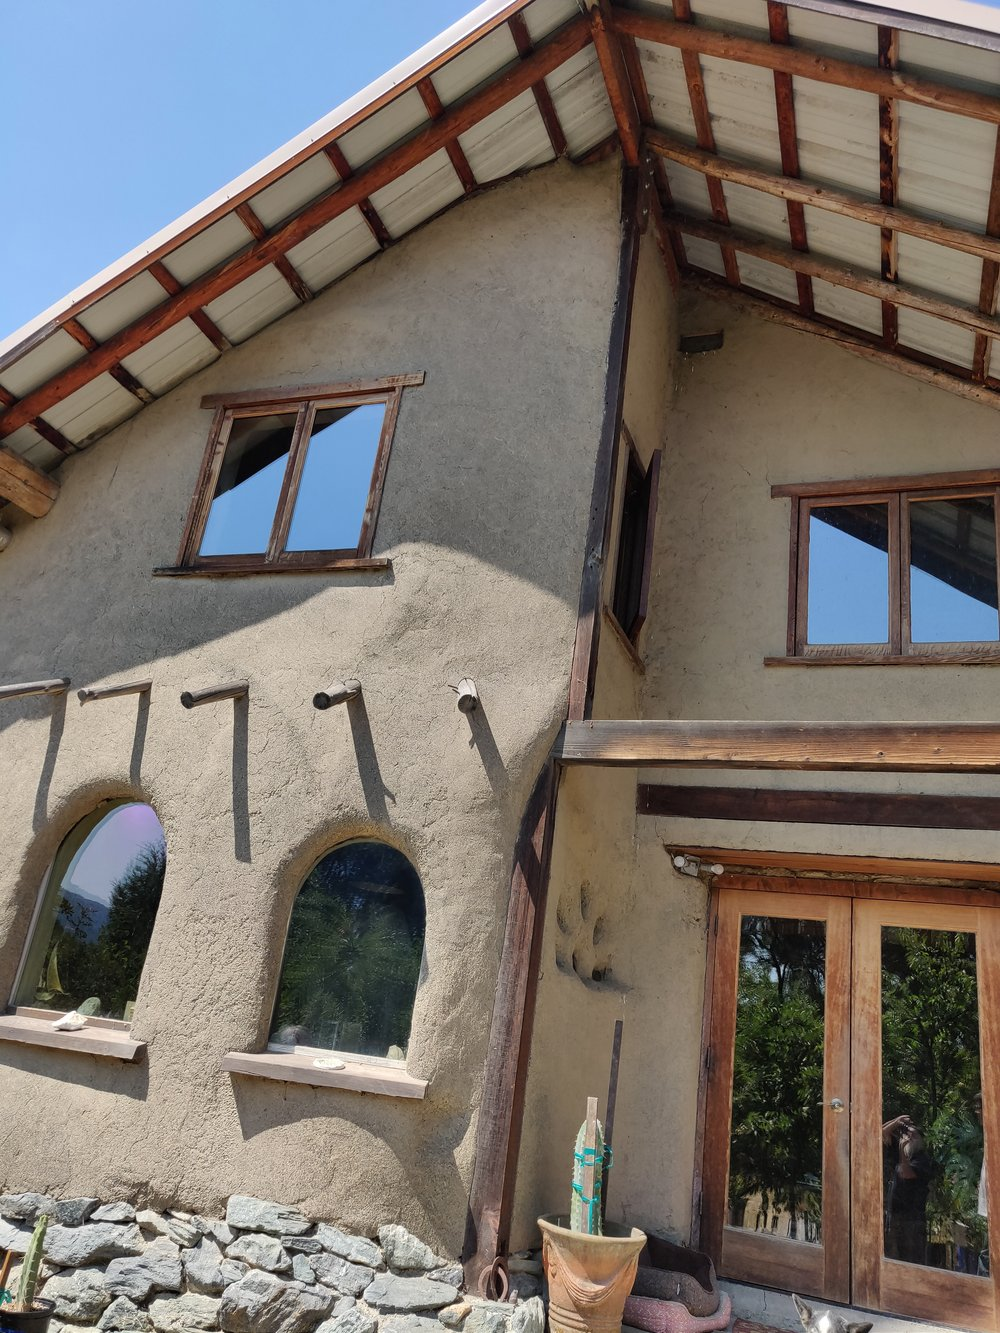 Round poles are used as timber framing for this fire resistant home using straw bale and thick earthen plaster enclosure. Outside Laytonville, CA. Designed and built by   Polecraft Solutions .